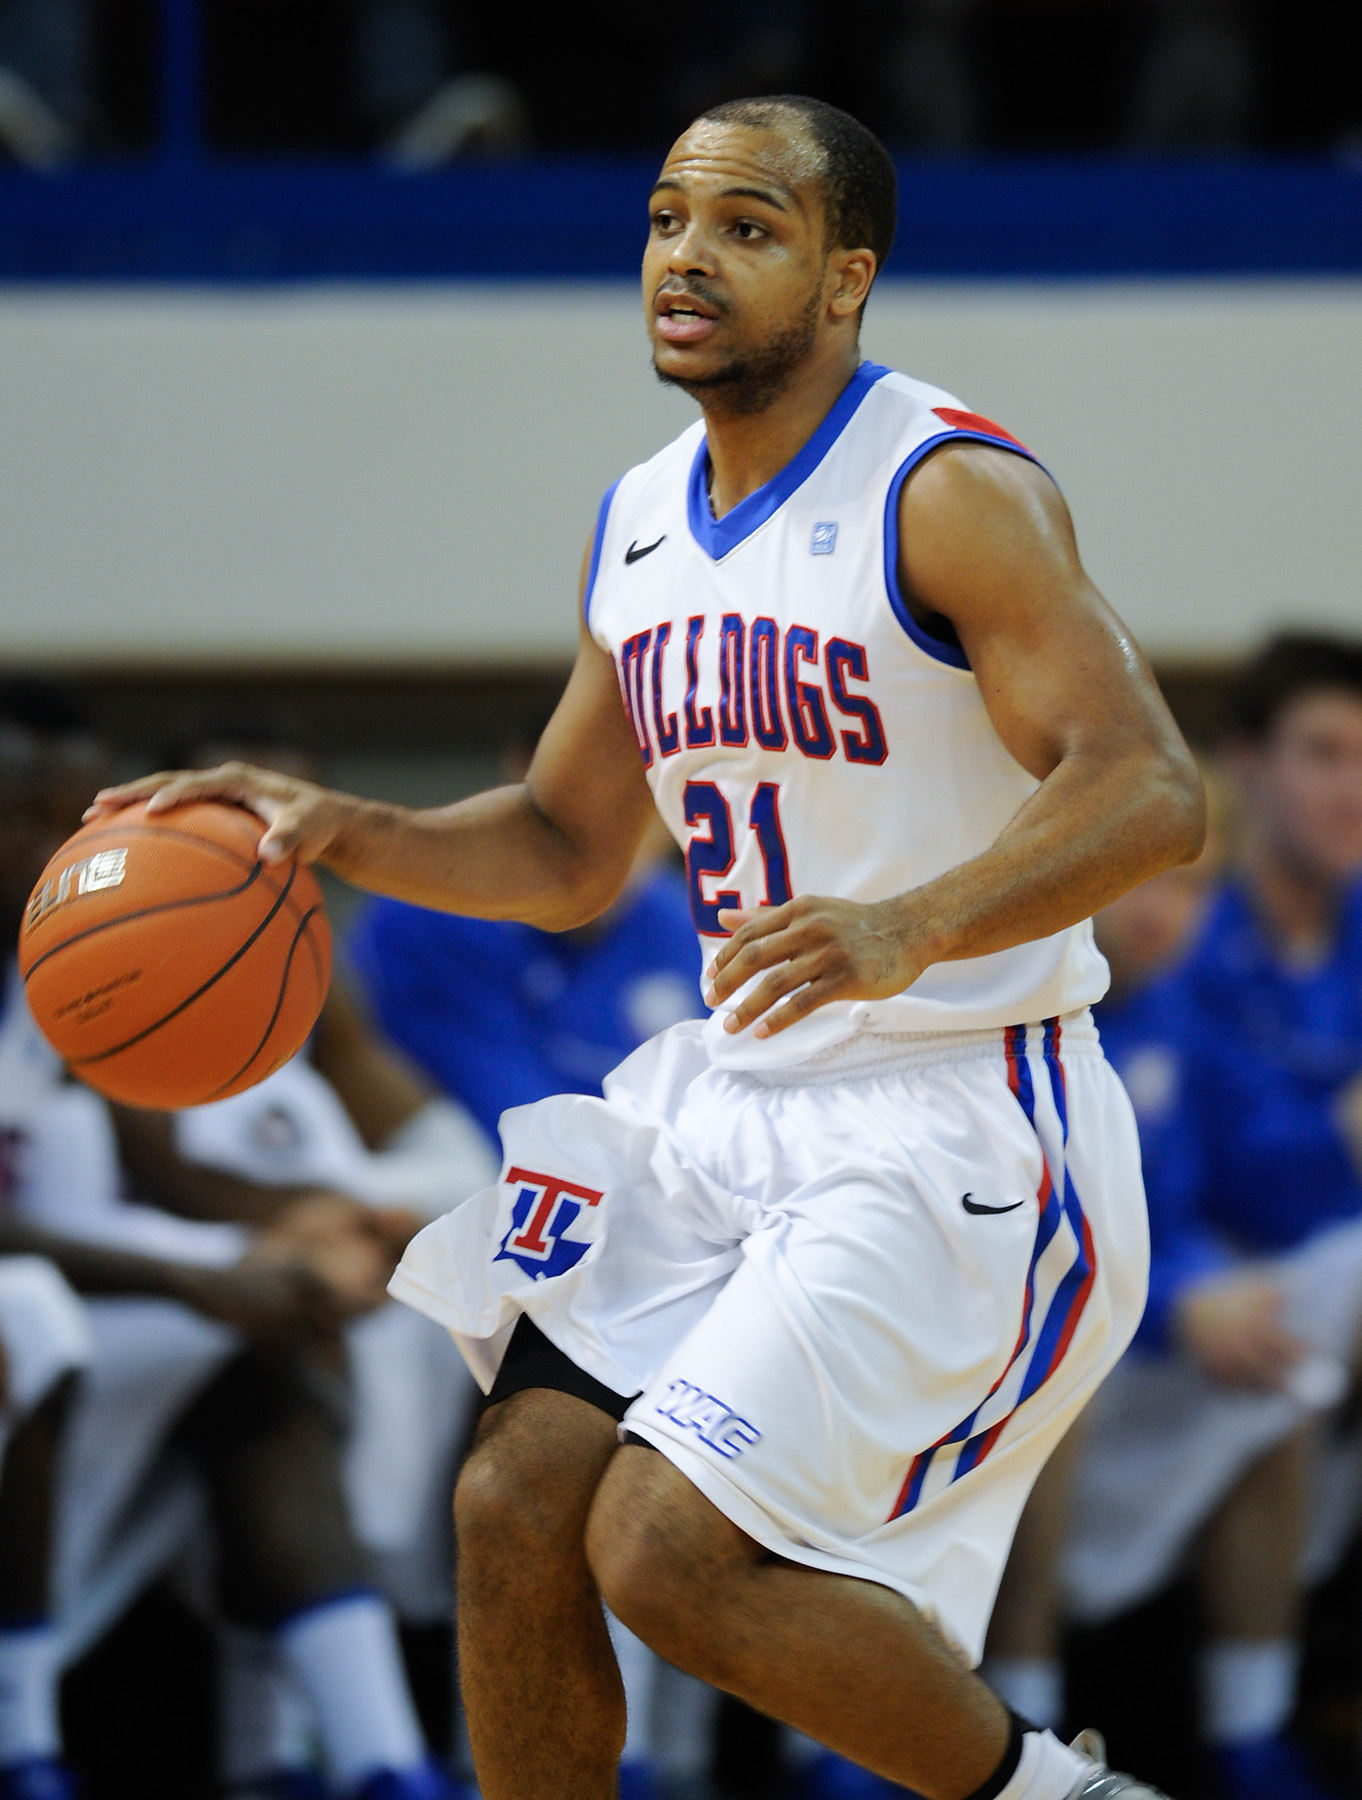 Junior guard Kenyon McNeail had a team-high 18 points in the previous meeting